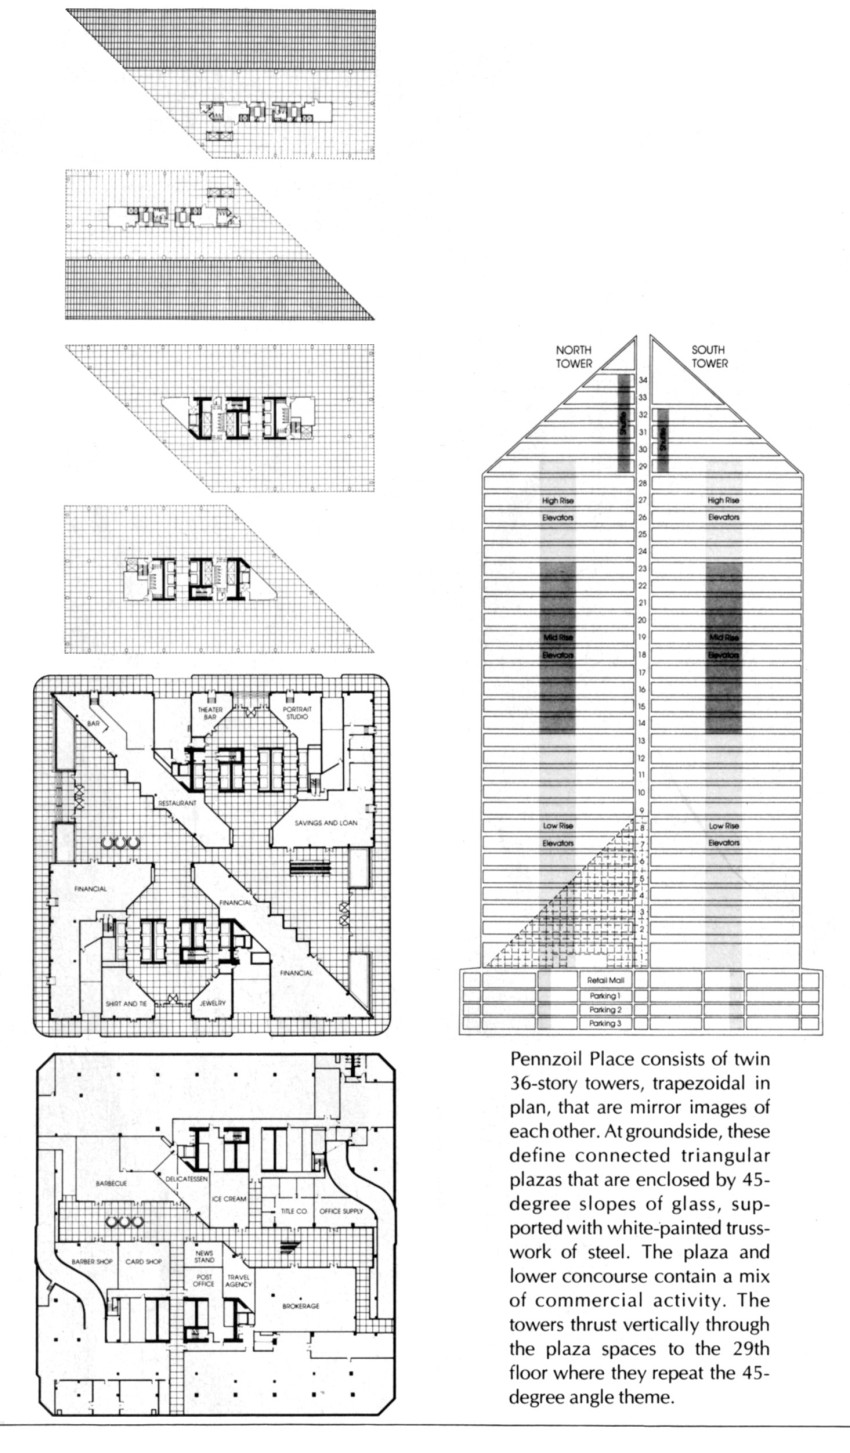 "Plans and sections of Pennzoil Place, as published in William Marlin, ""Pennzoil Place,"" Architectural Record 160, no. 7 (November 1976): 102."